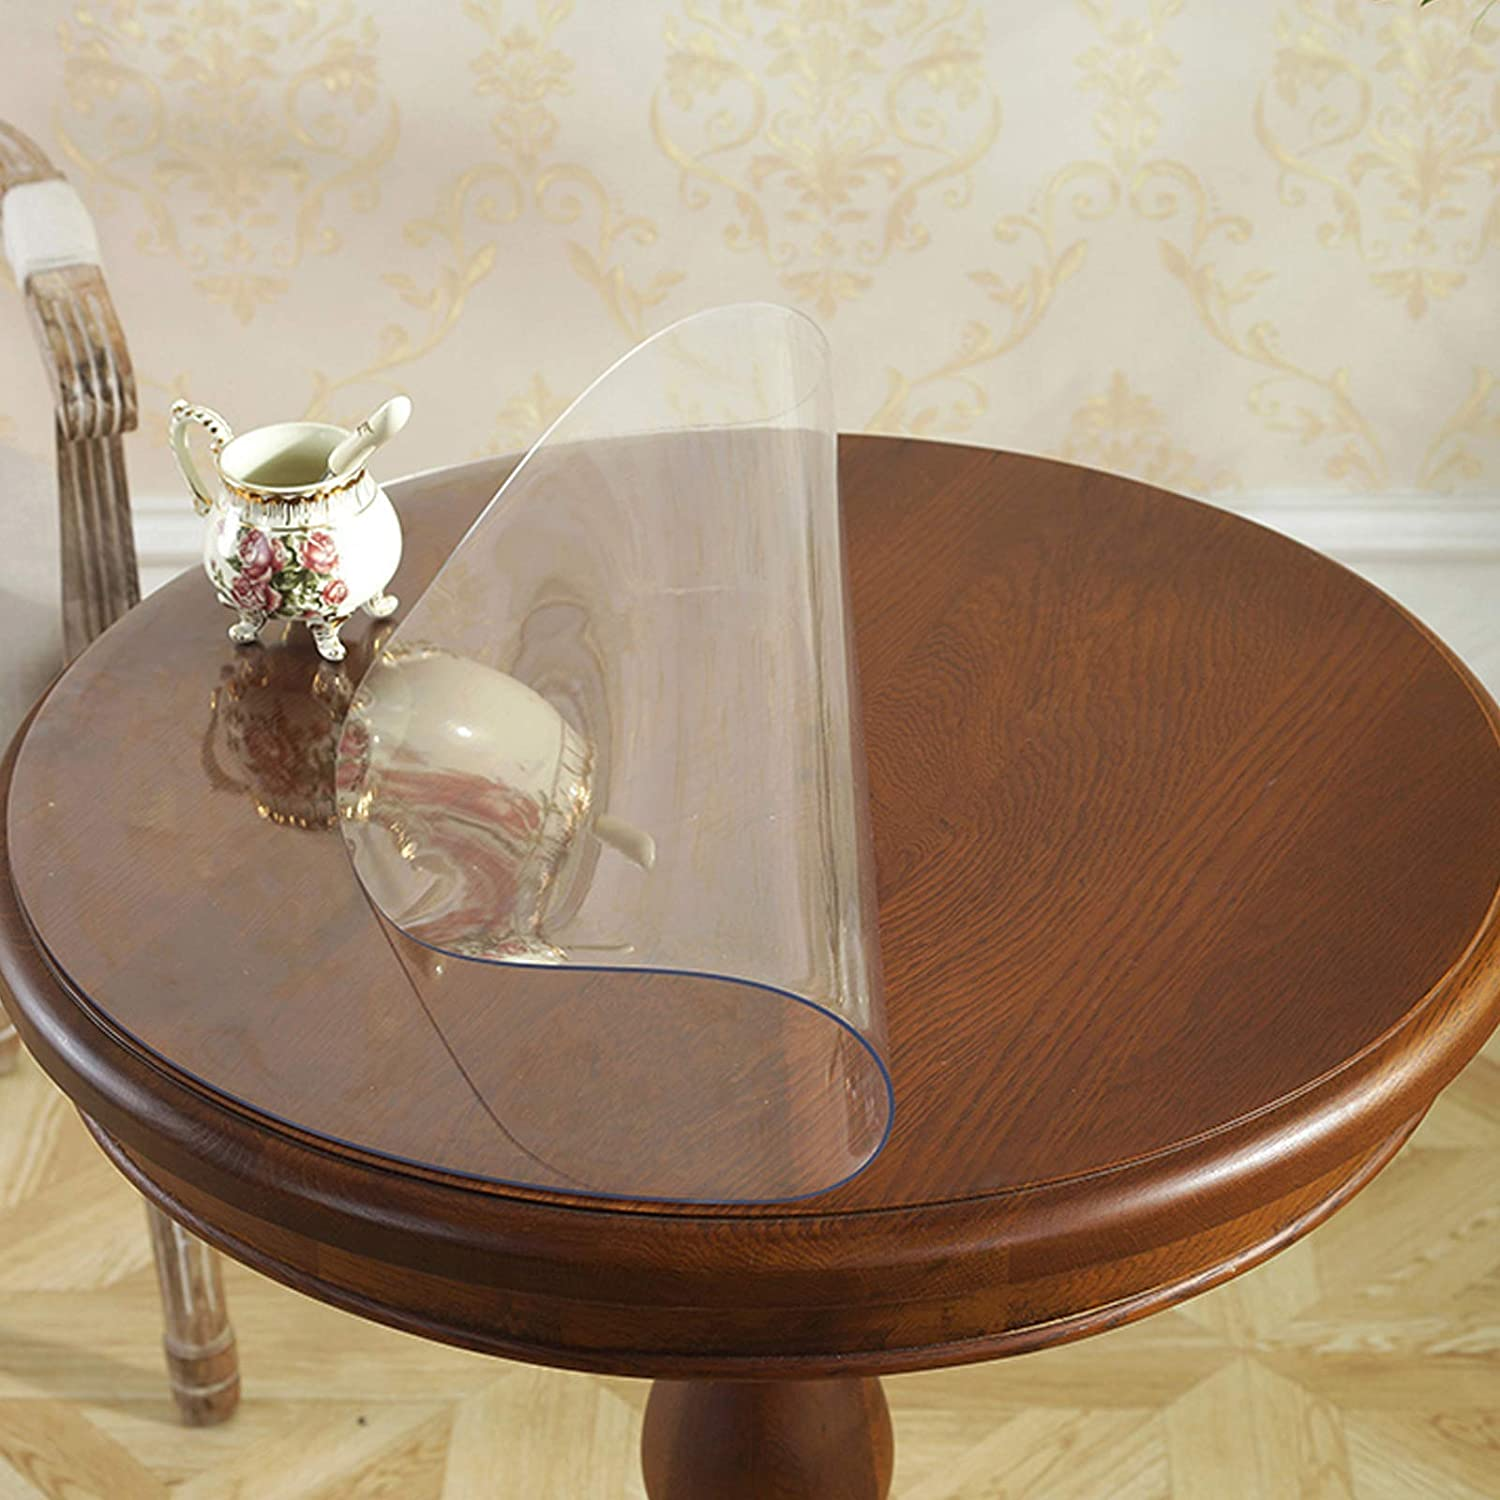 Geovne Clear Table Max 56% OFF Cover Protector Round Thick Pad 2mm Tas 5% OFF